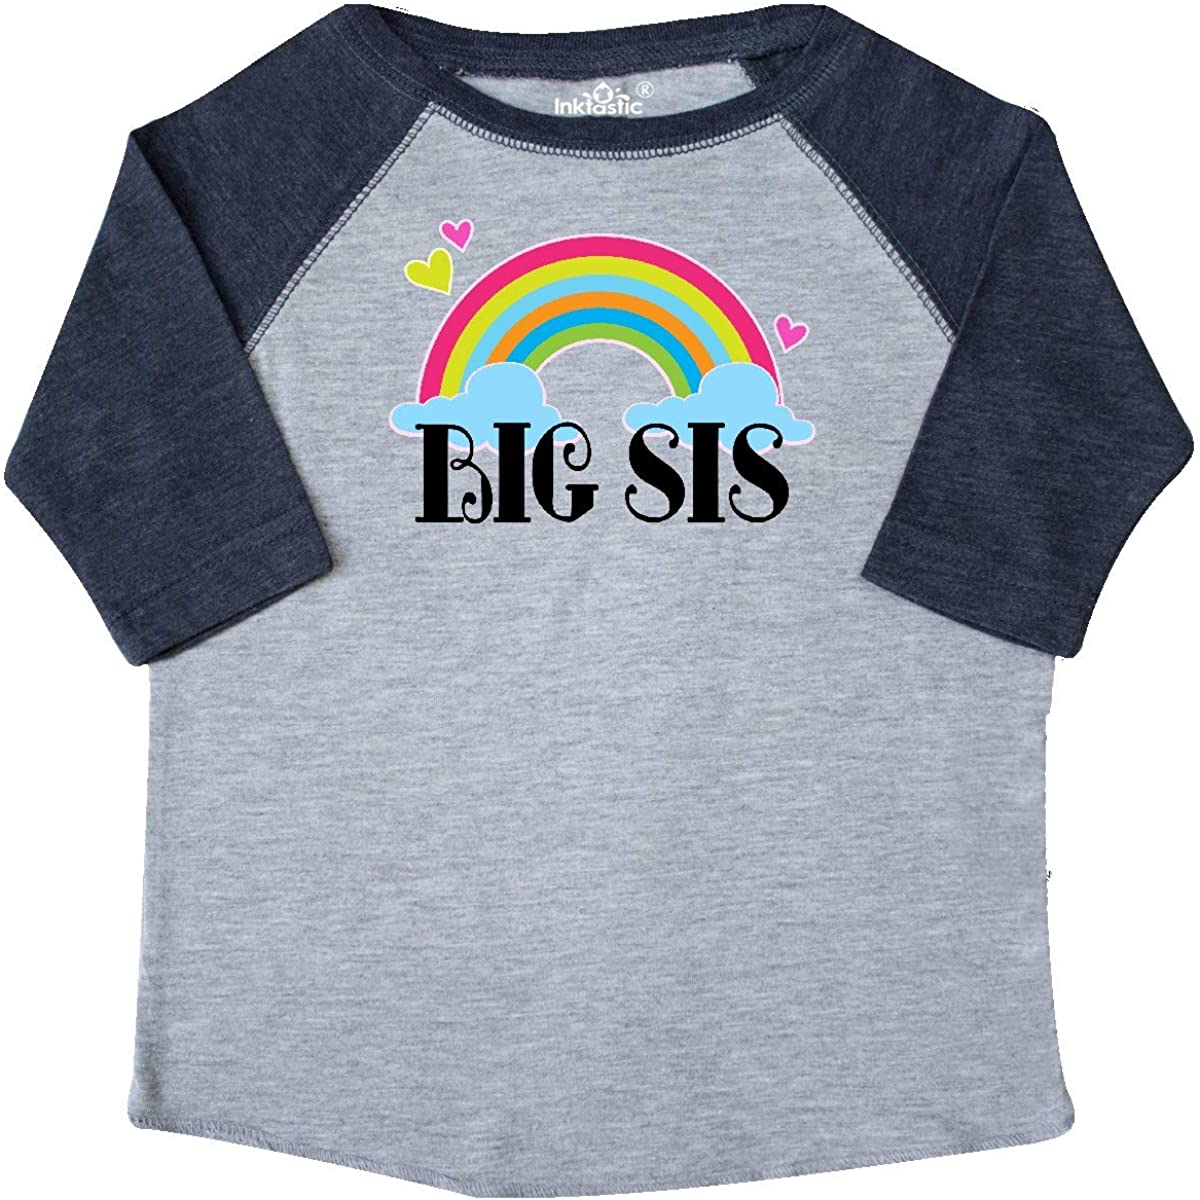 inktastic Big Sis Outfit Girls Sister Announcement Toddler T-Shirt